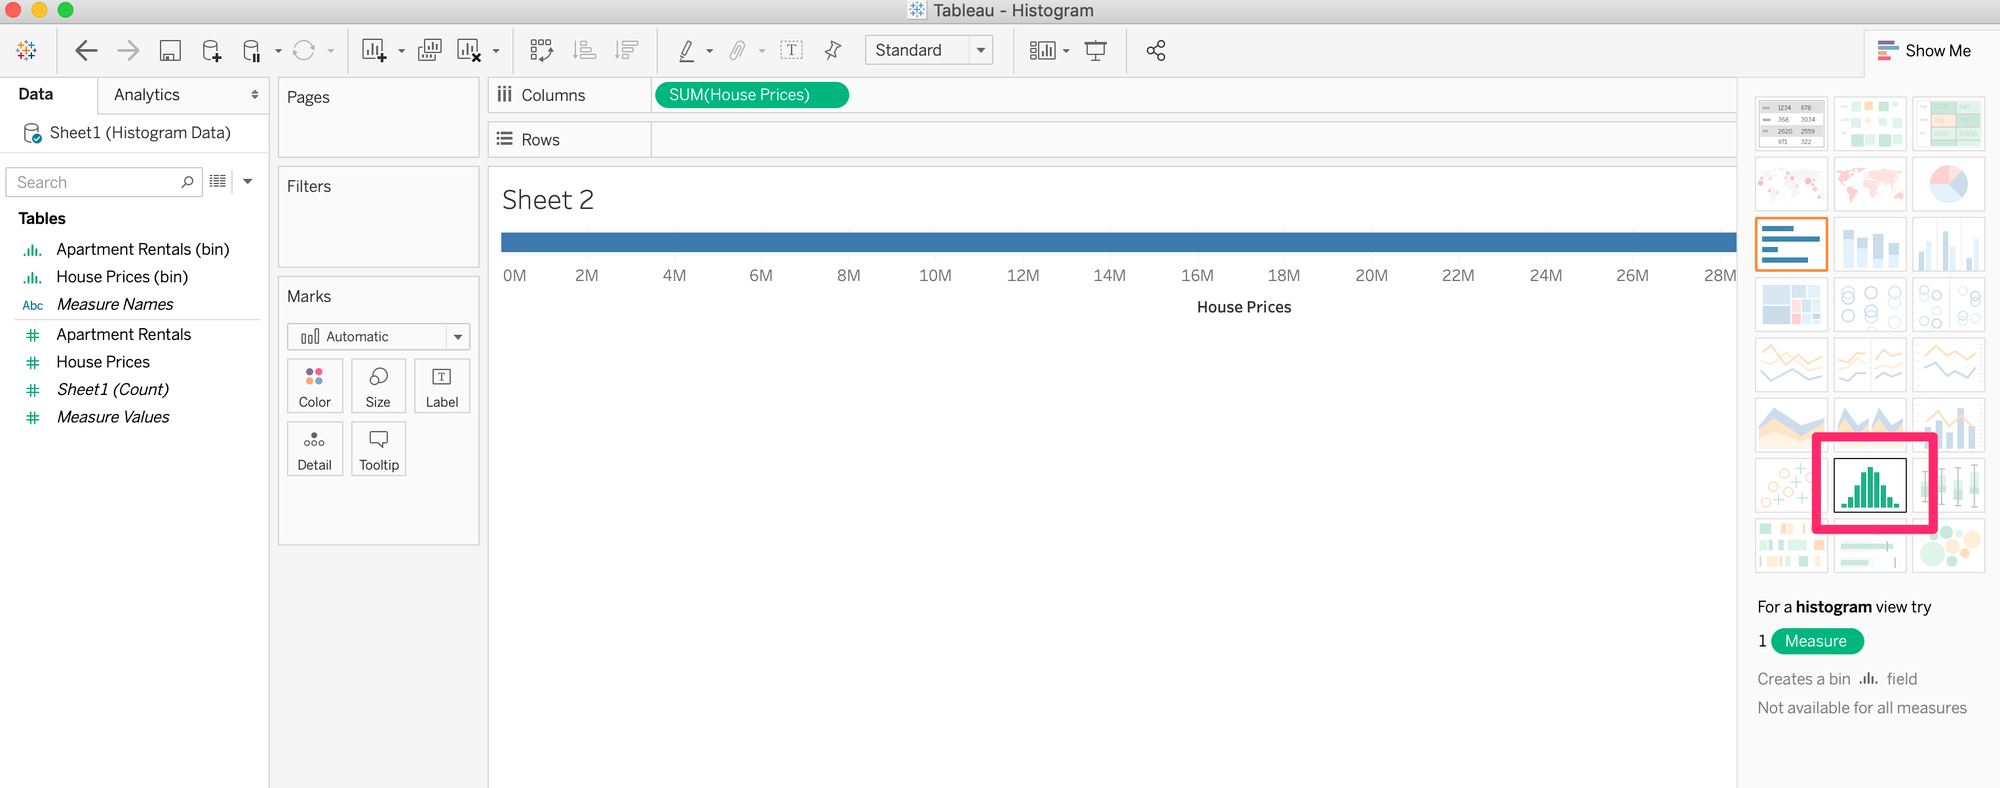 Show Me Histogram in Tableau